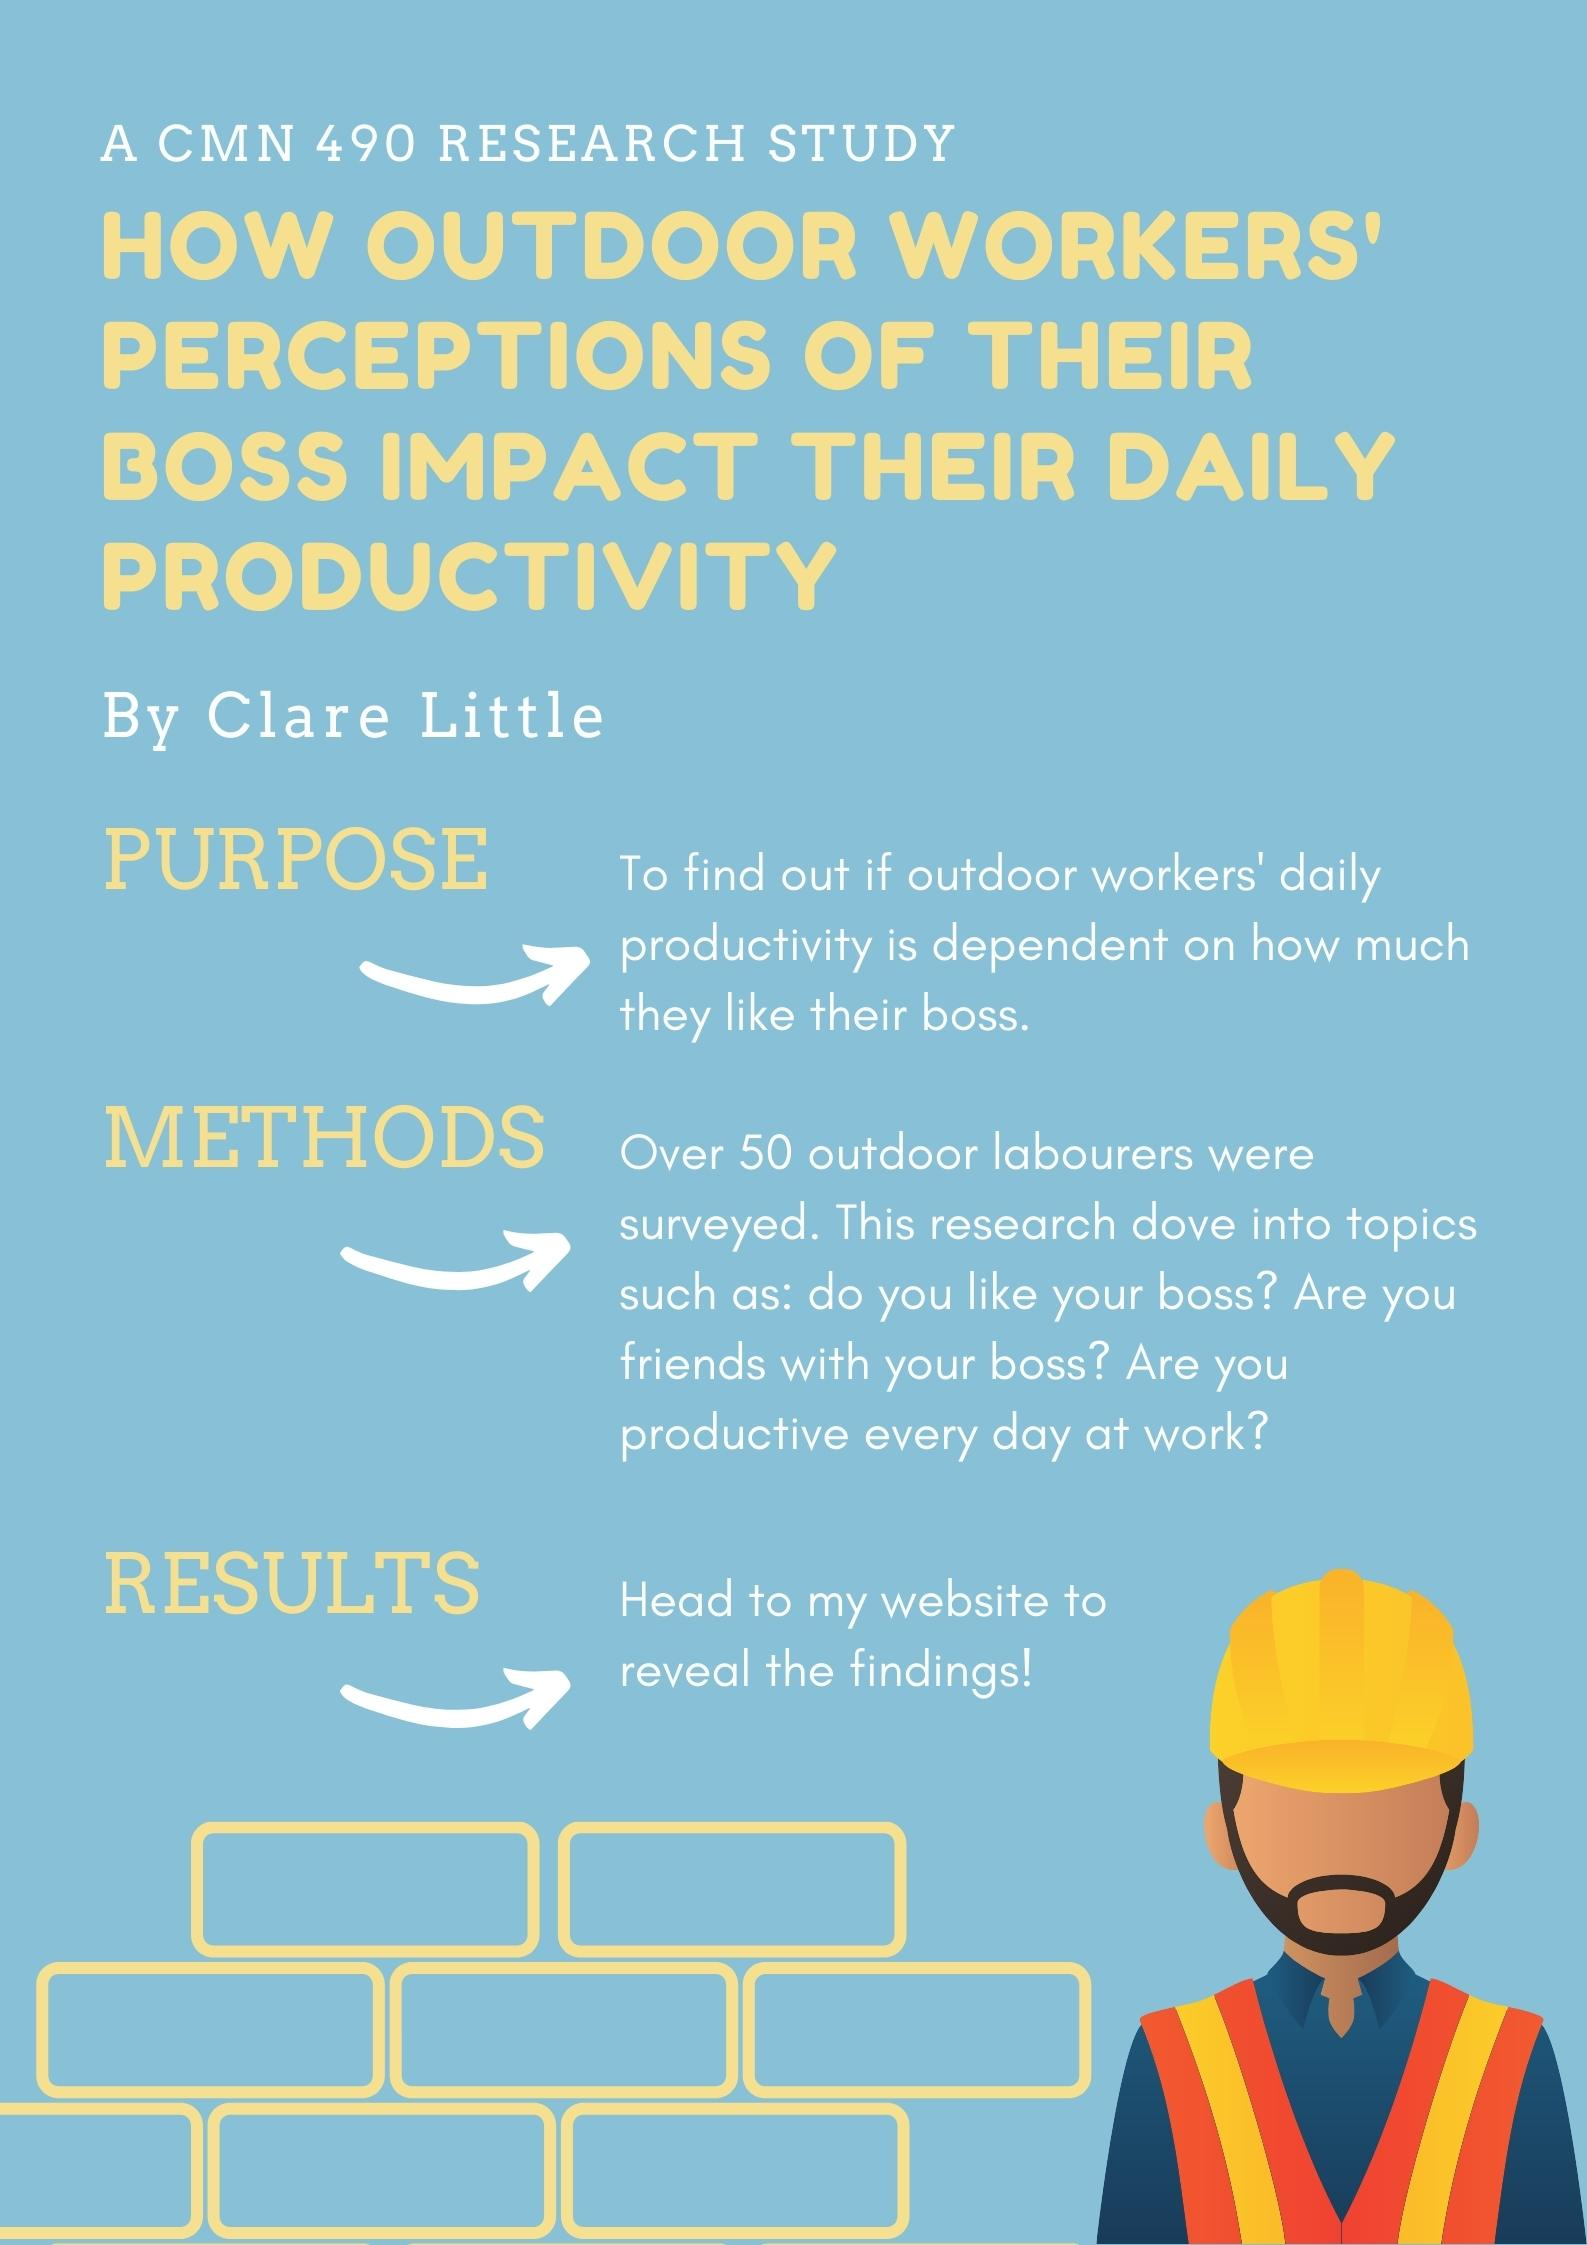 How Outdoor Workers' Perceptions of Their Boss Impacts Their Daily Productivity